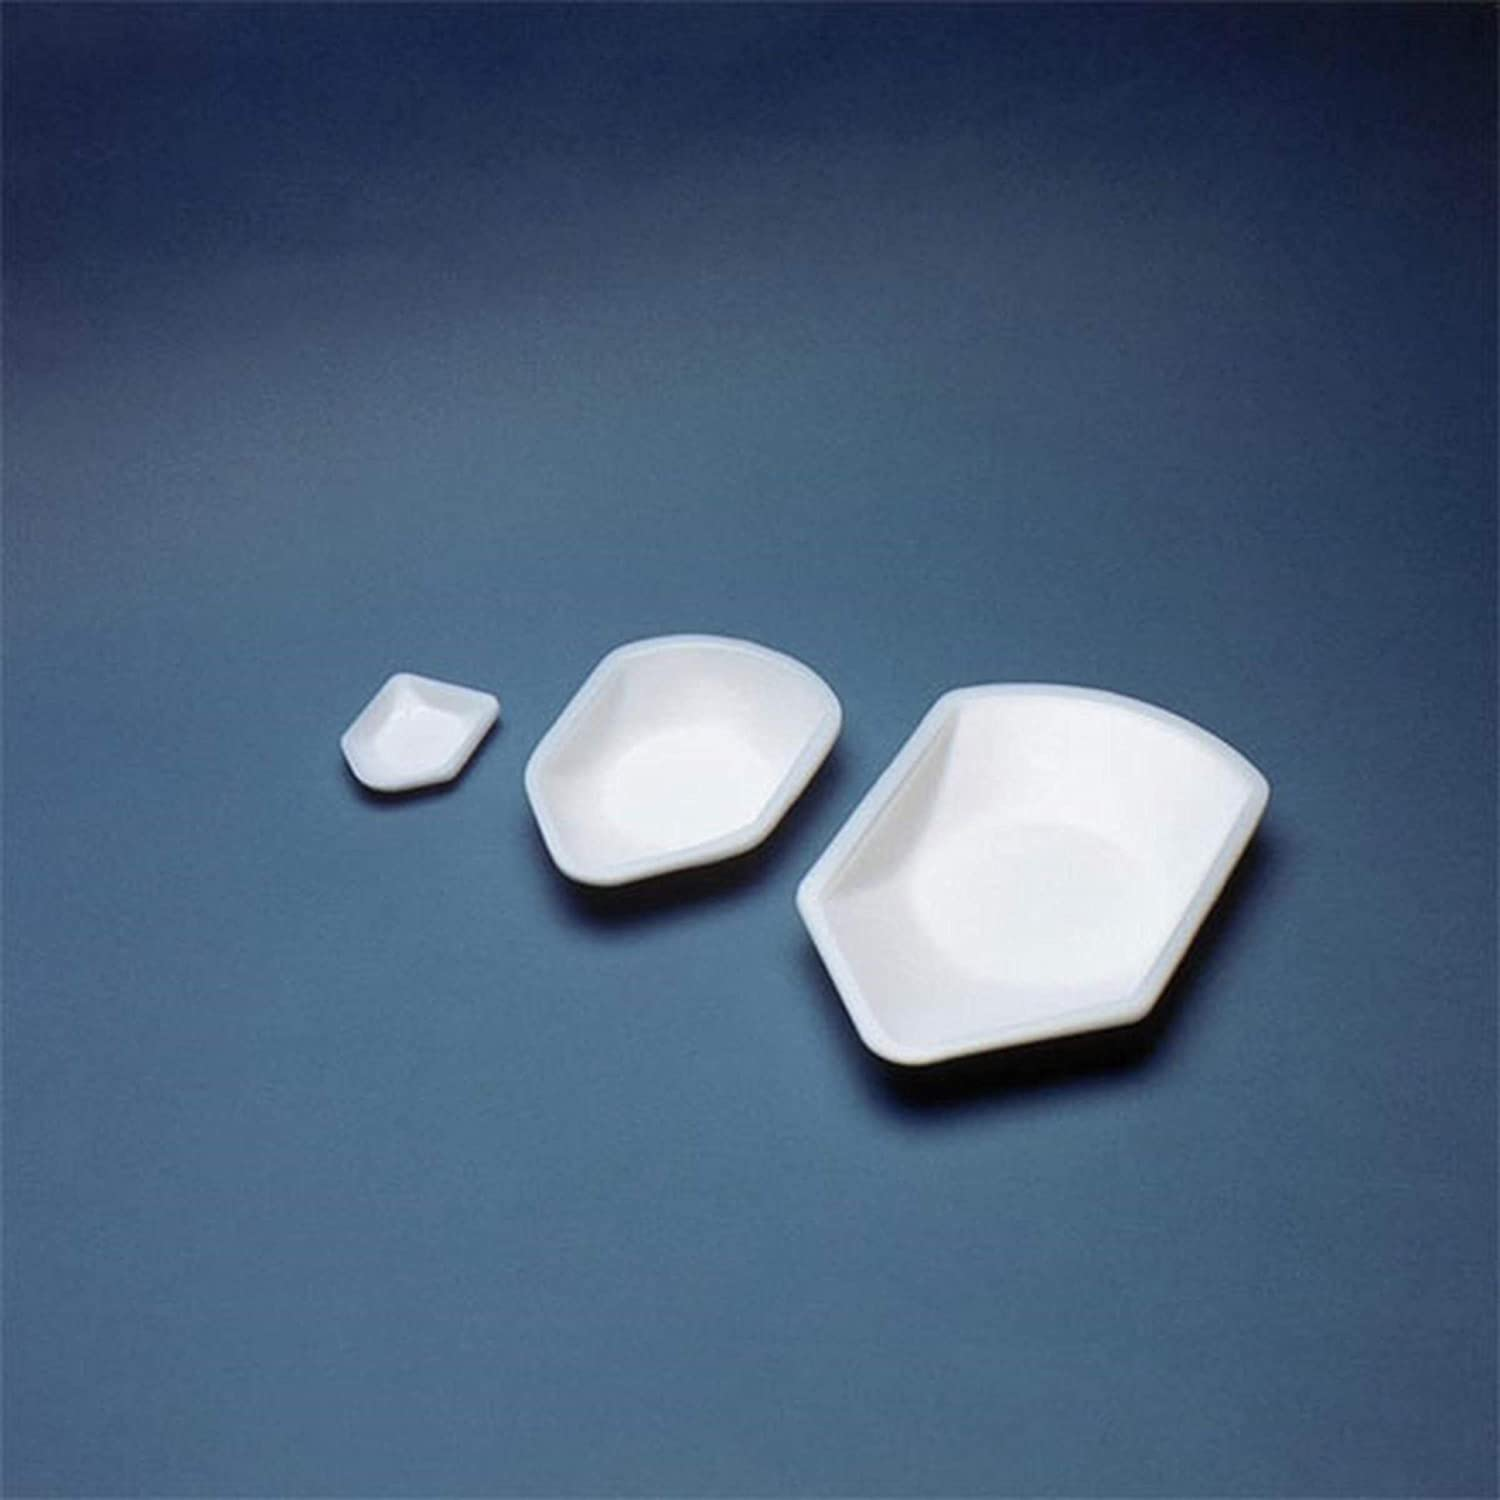 EAGLE THERMOPLASTICS PB-316 Pour-Boat Polystyrene Weighing Dish with Pour-Spout, Small Size, 2-1/4